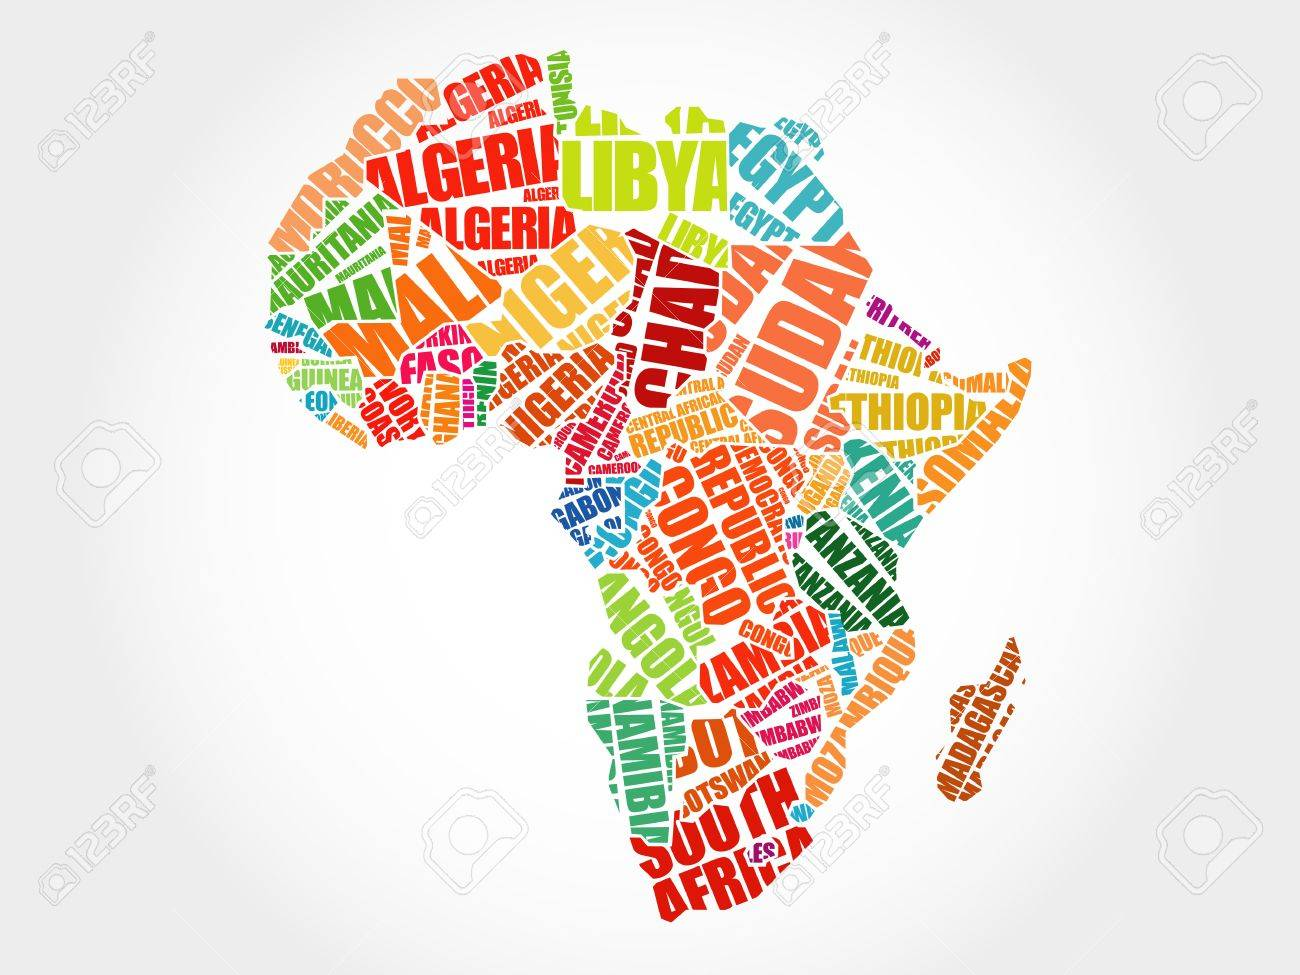 African countries map in typography word cloud concept royalty free african countries map in typography word cloud concept stock vector 49428273 gumiabroncs Choice Image